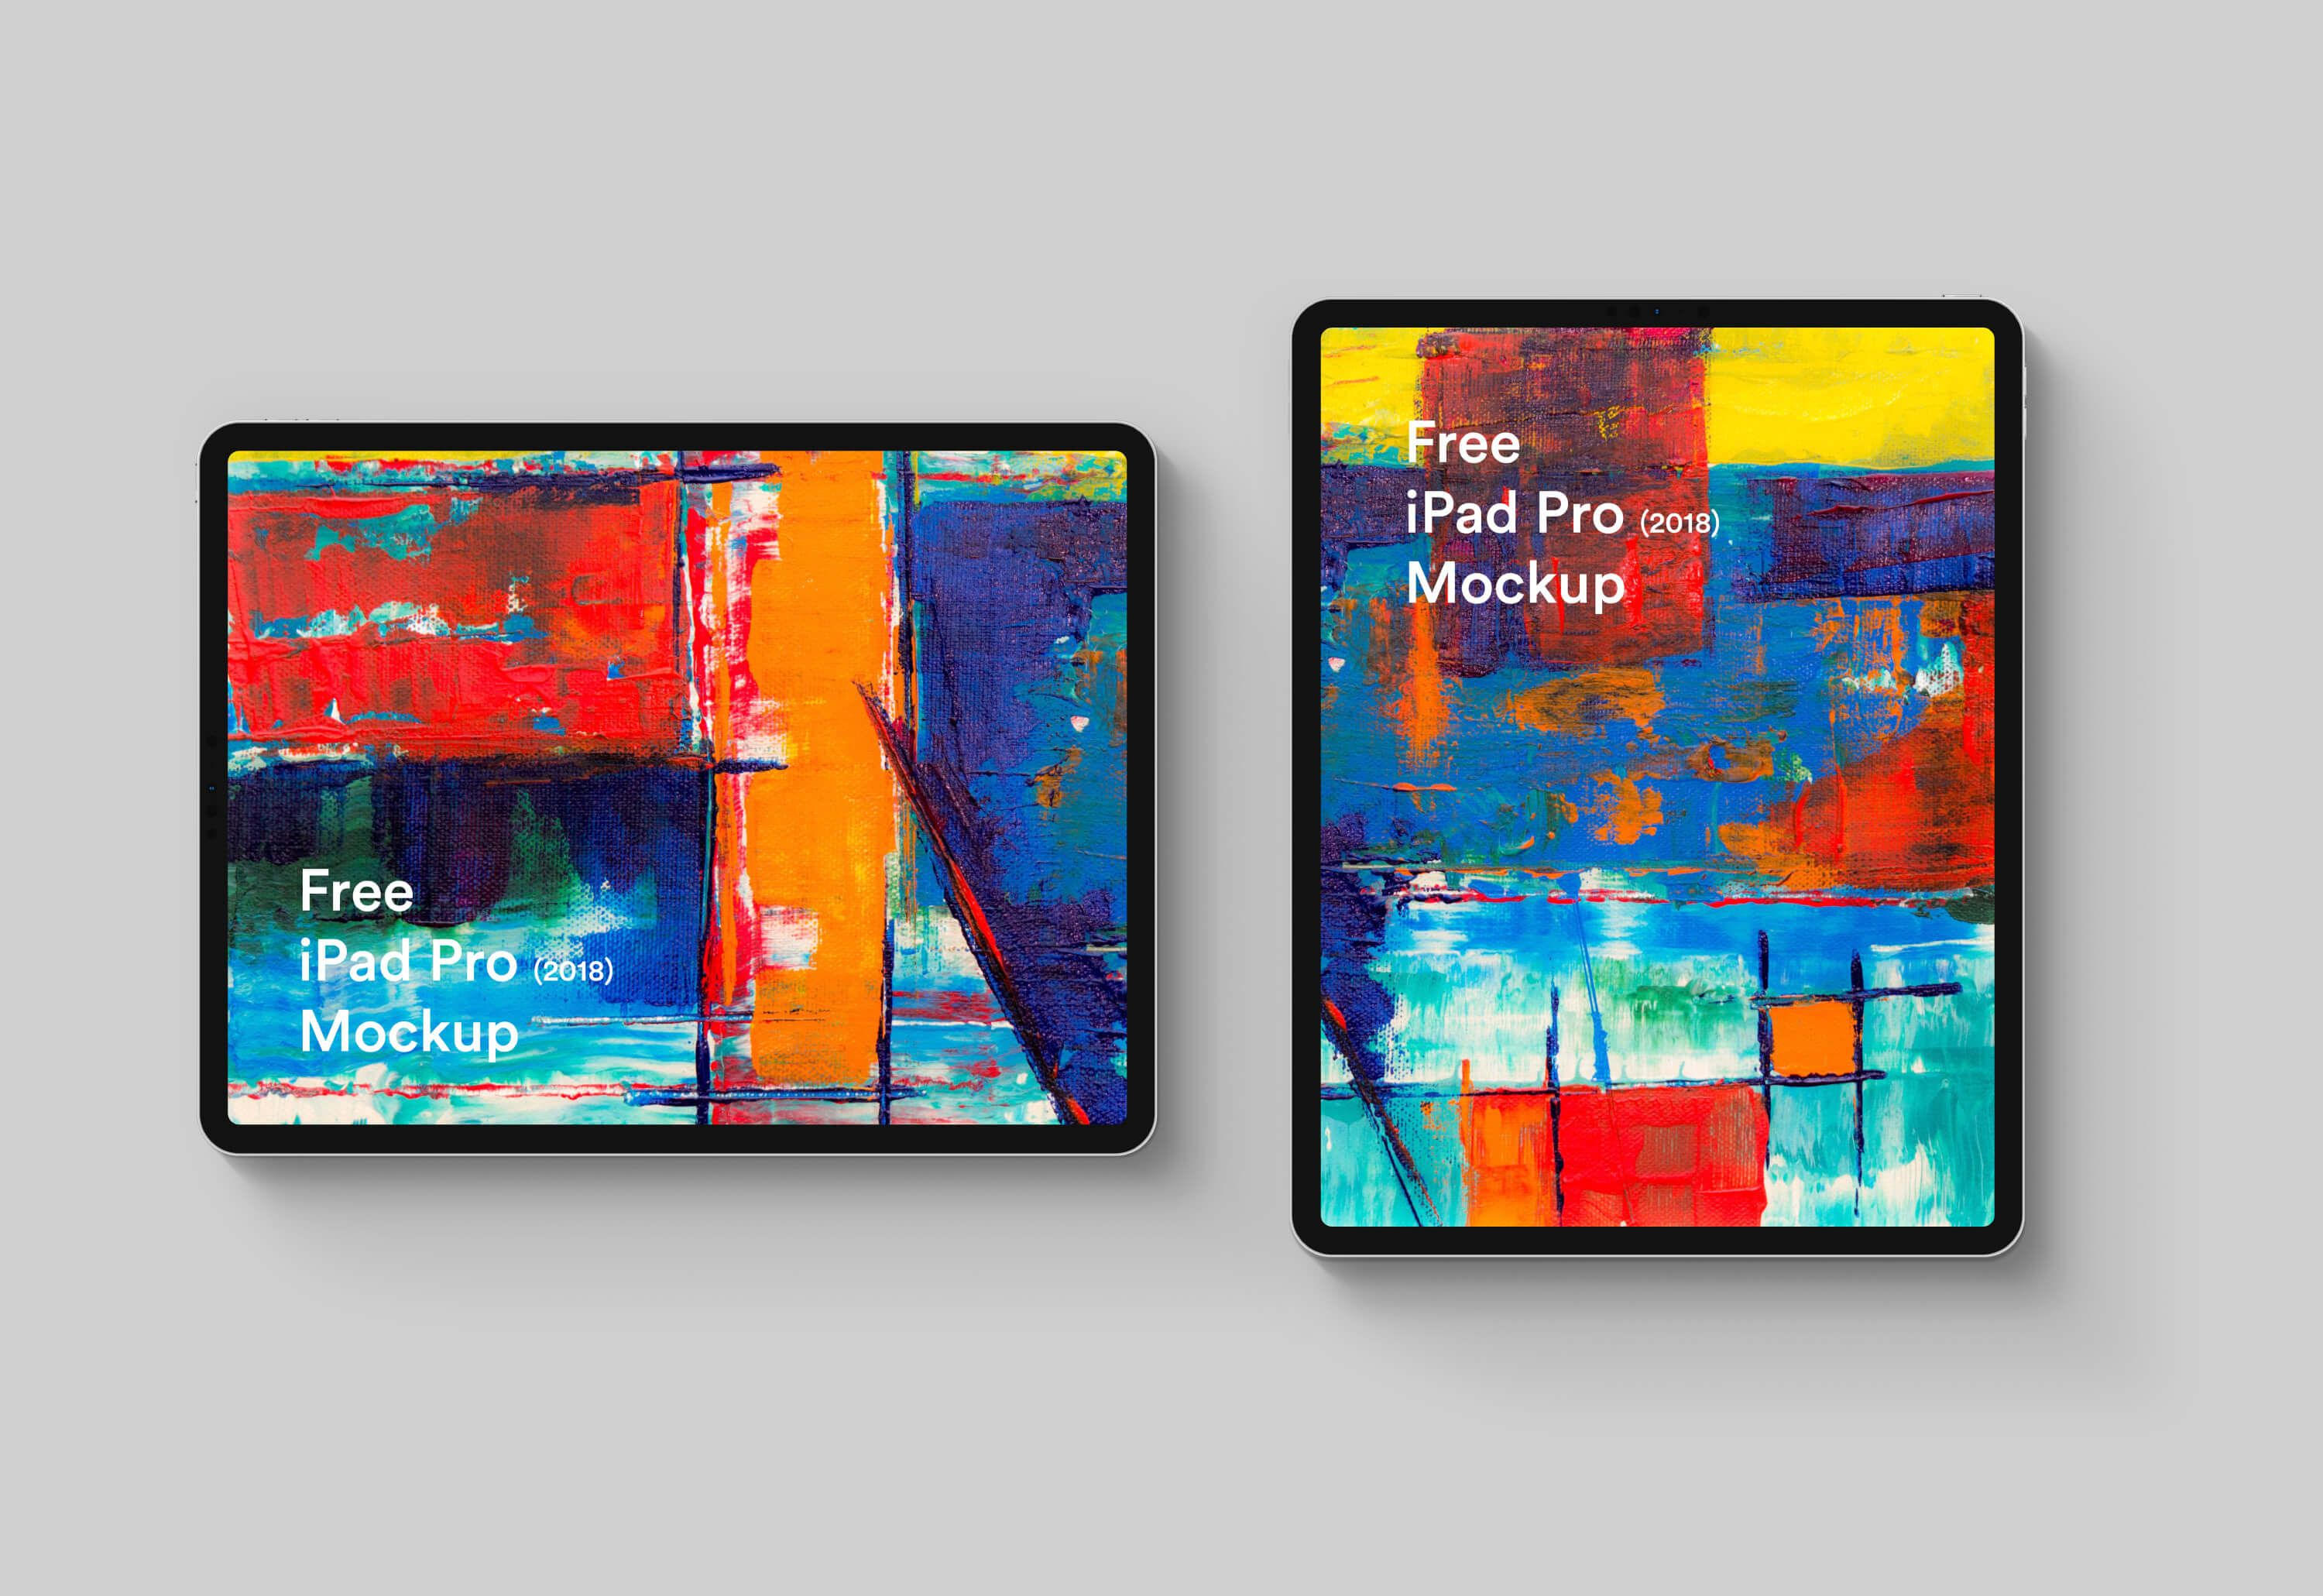 20 Best Free Ipad Mockups And Templates Psd Sketch In 2019 Ipad Mockup Ipad Mockup Psd Free Ipad